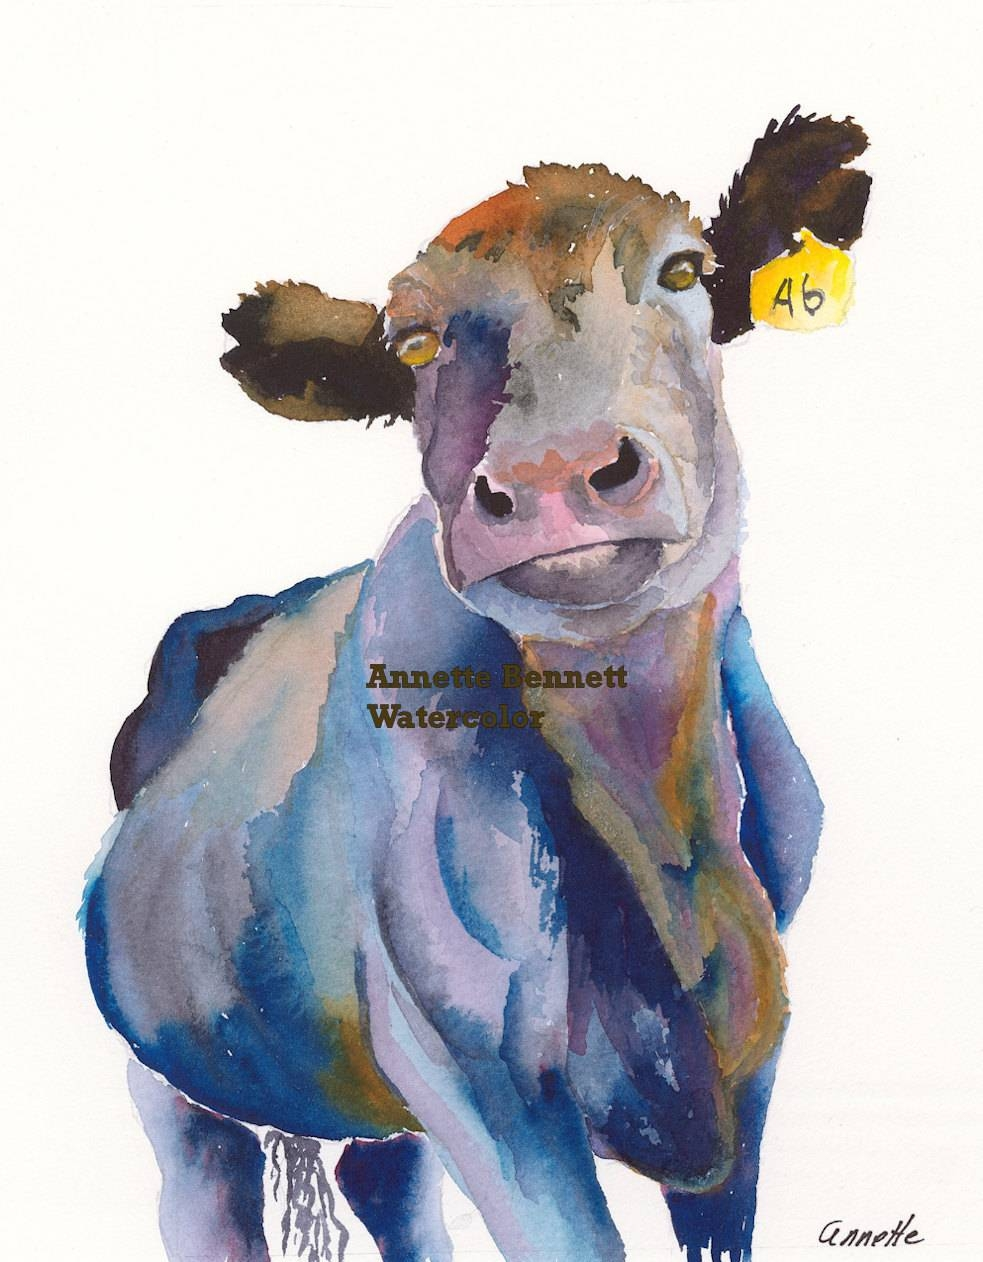 Angus Cow Canvas Wall Decor Cow Wall Art Farm Art Canvas Print Inside Latest Farm Animal Wall Art (View 1 of 20)